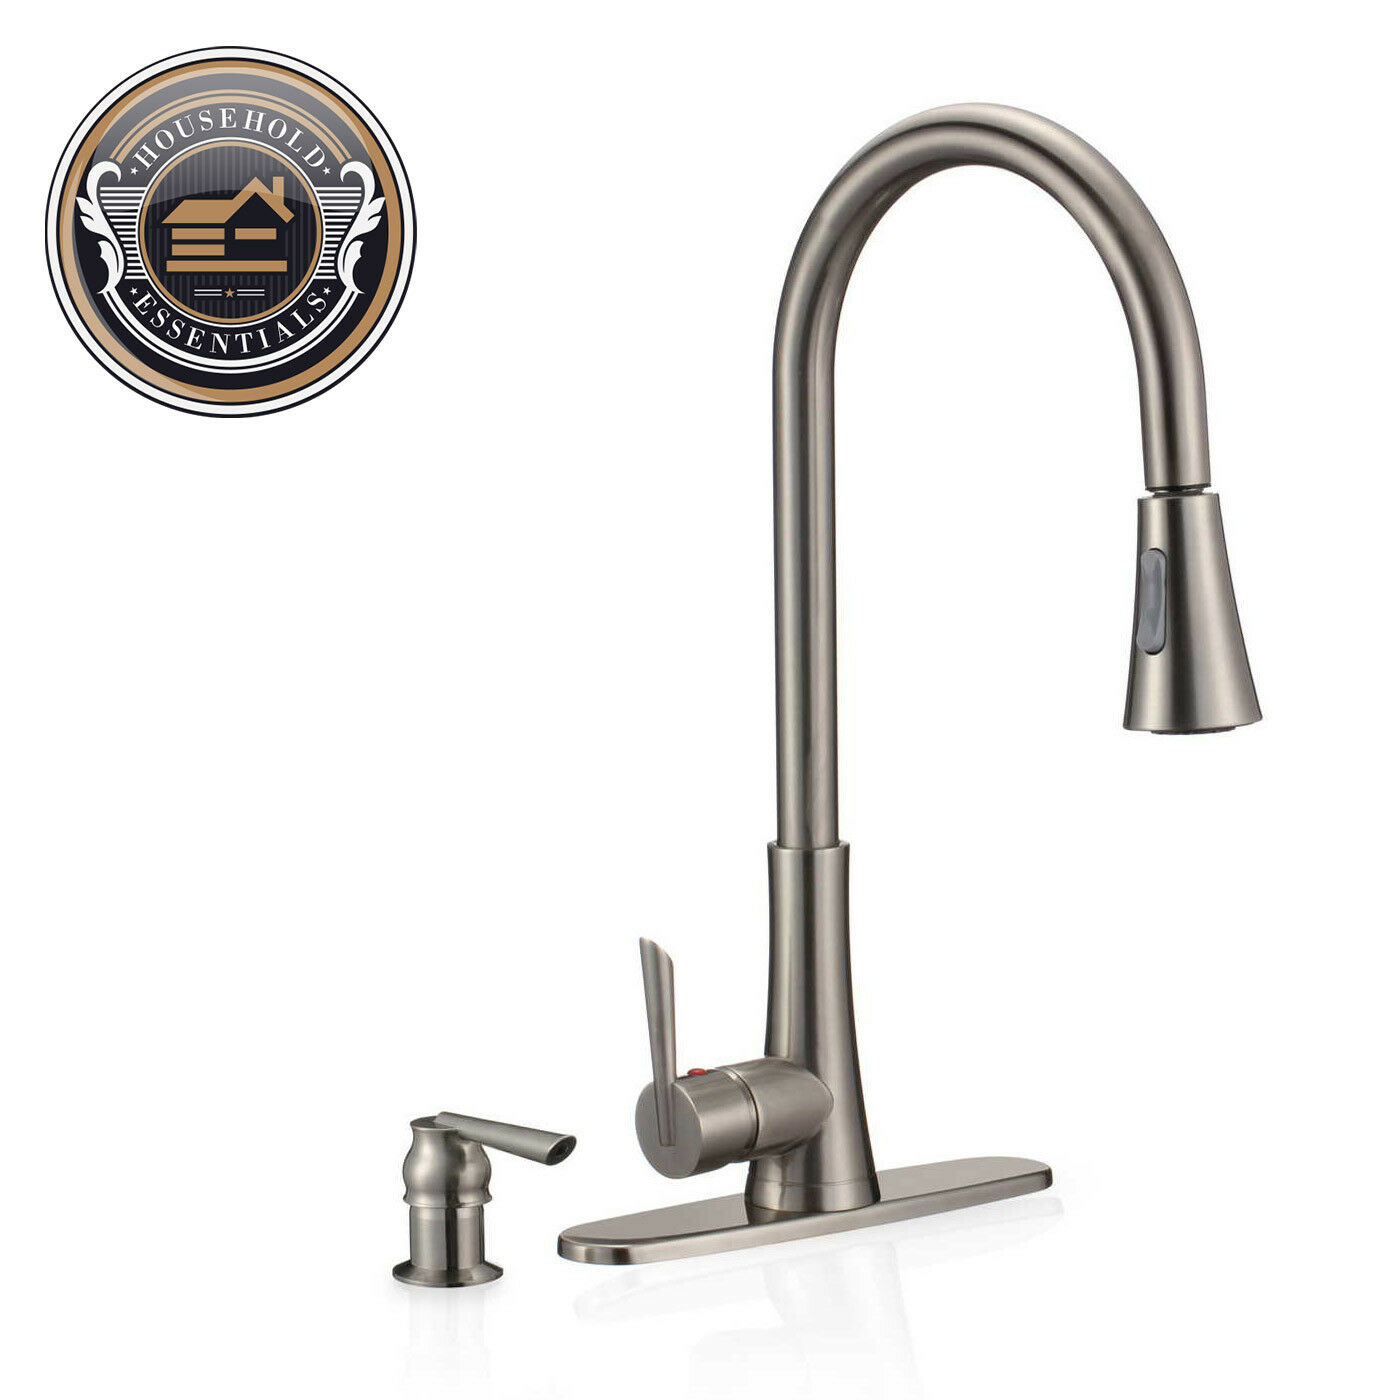 19 Brushed Nickel Pull Down Kitchen Faucet With Sprayer And Soap Dispenser 1 Of 1free Shipping See More